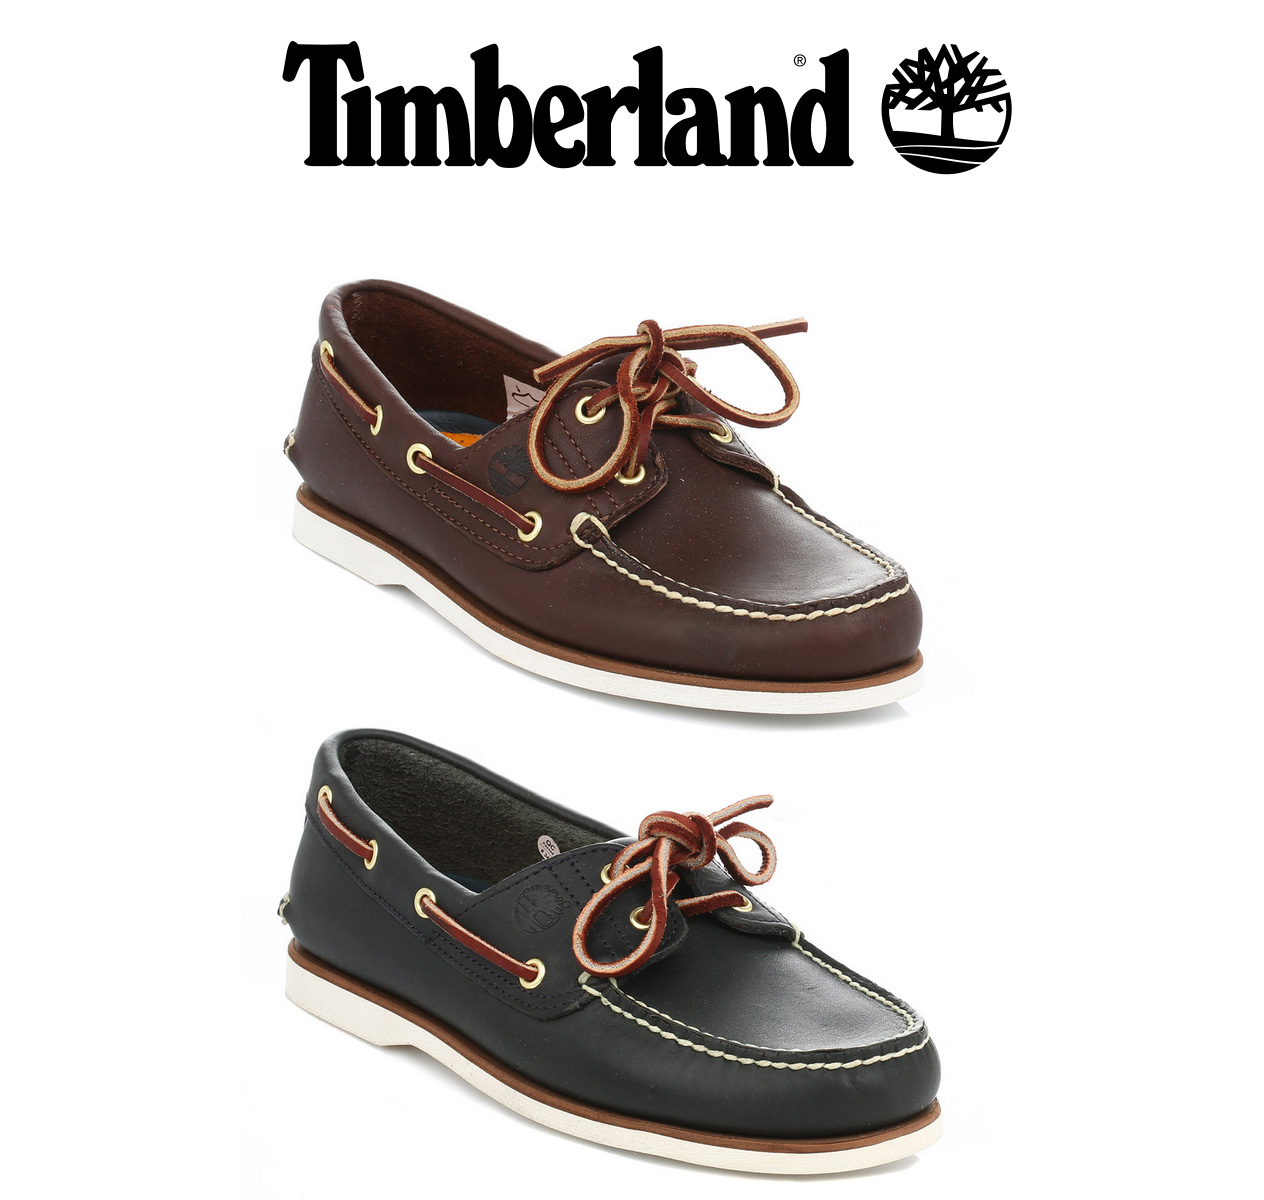 0971e38e0 These classic Timberland boat shoes have been made with the discerning  customer in mind